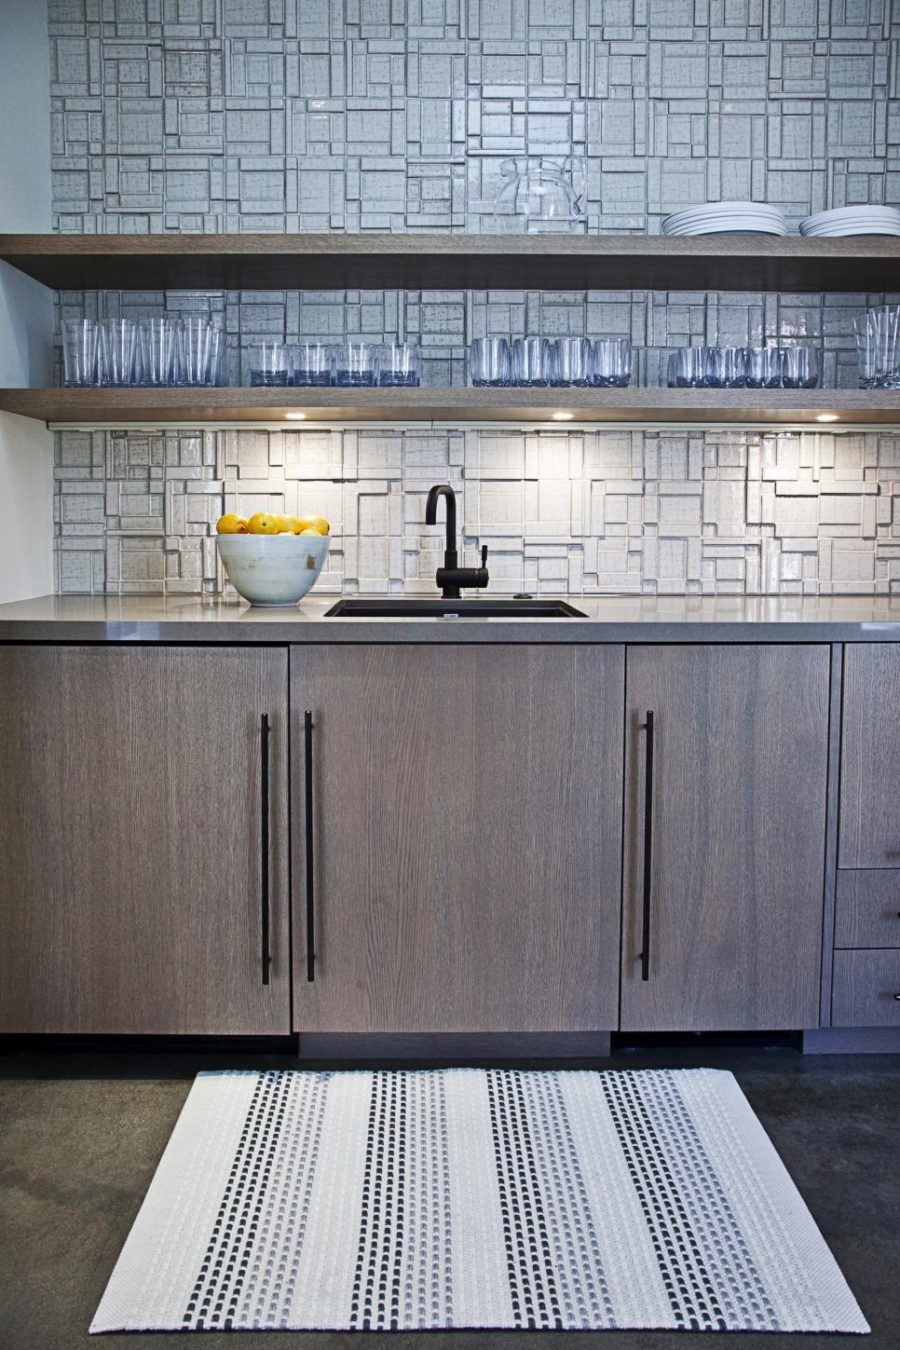 Textured tile backsplash by Laura Martin Bovard